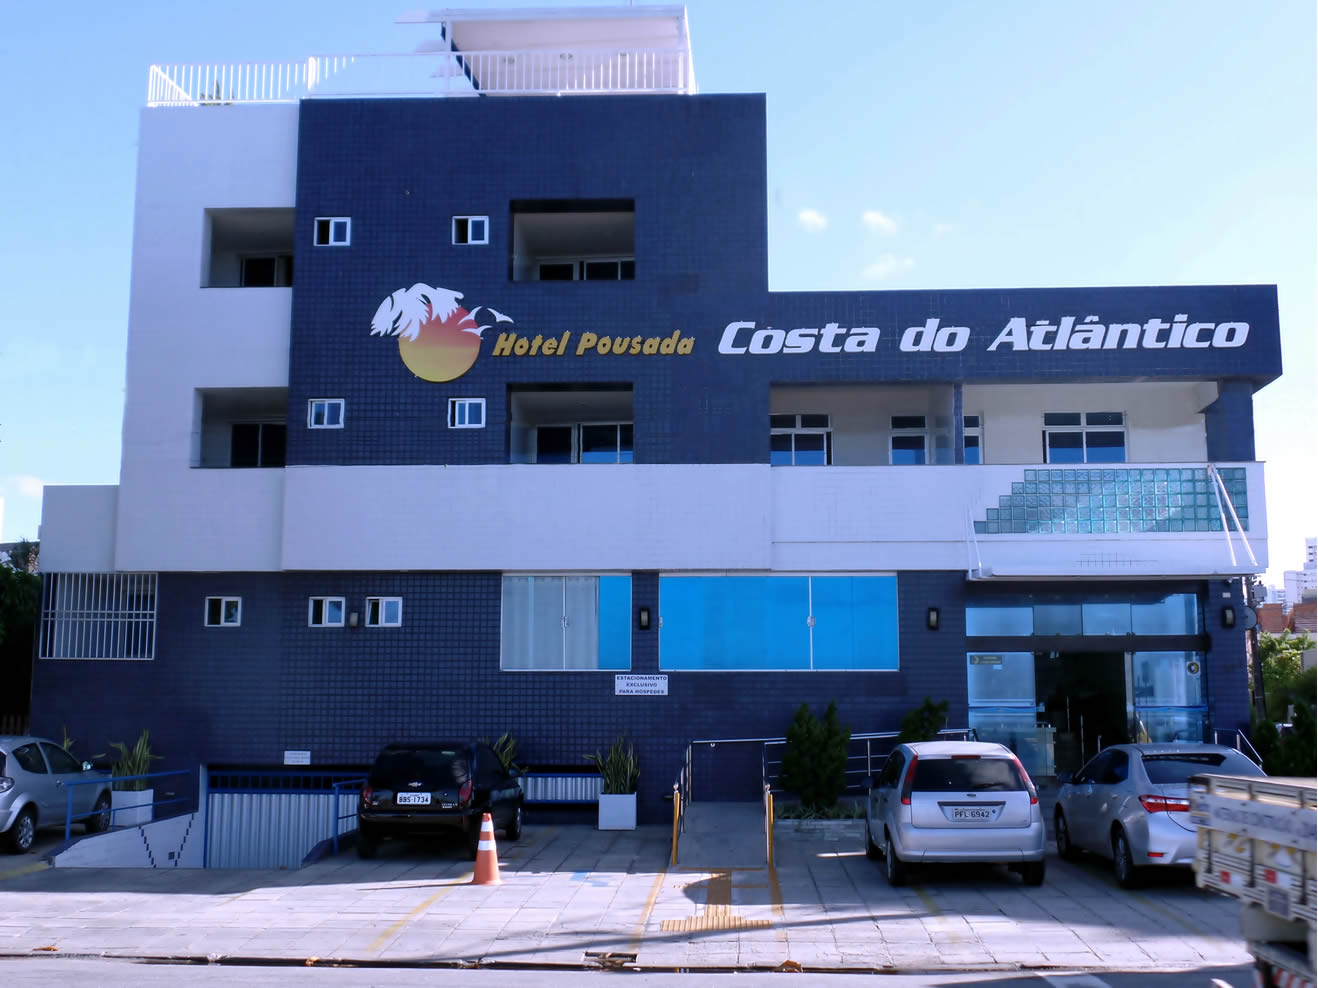 Hotel Pousada Costa do Atlântico